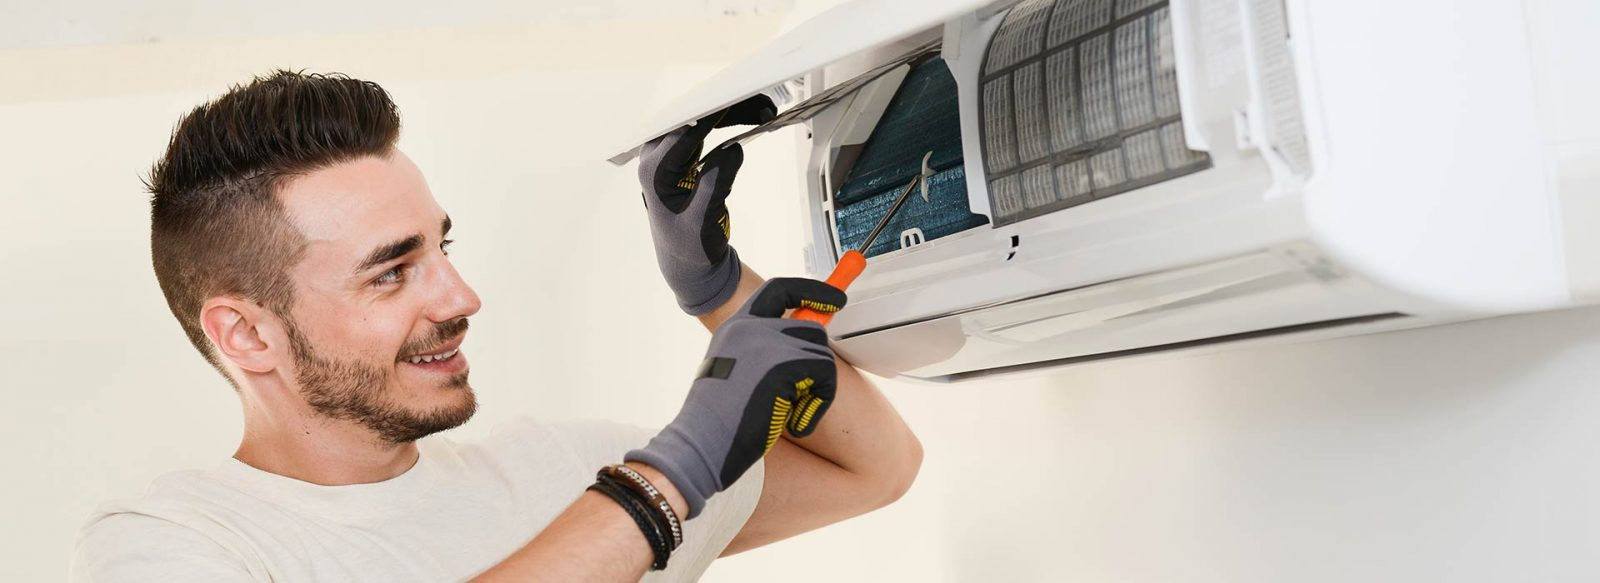 Air conditioner Troubleshooting with Technicool Air Conditioning